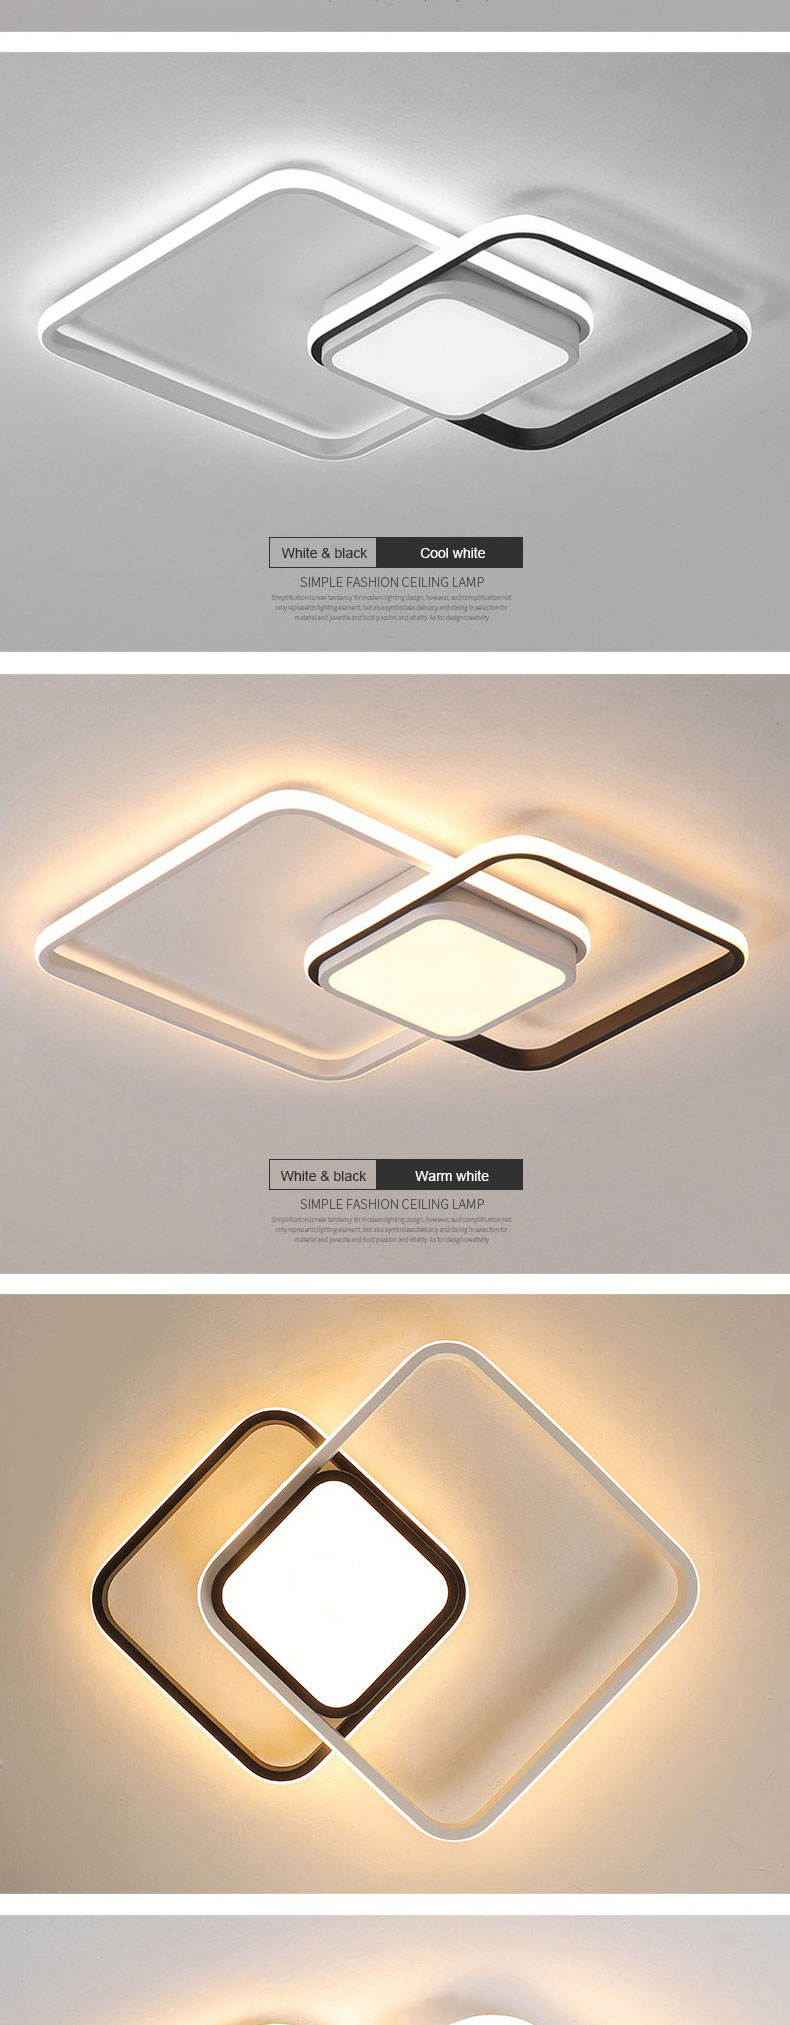 HTB1NAkgXvfsK1RjSszbq6AqBXXan LICAN Bedroom Living room Ceiling Lights Modern LED lampe plafond avize Modern LED Ceiling Lights lamp with remote control